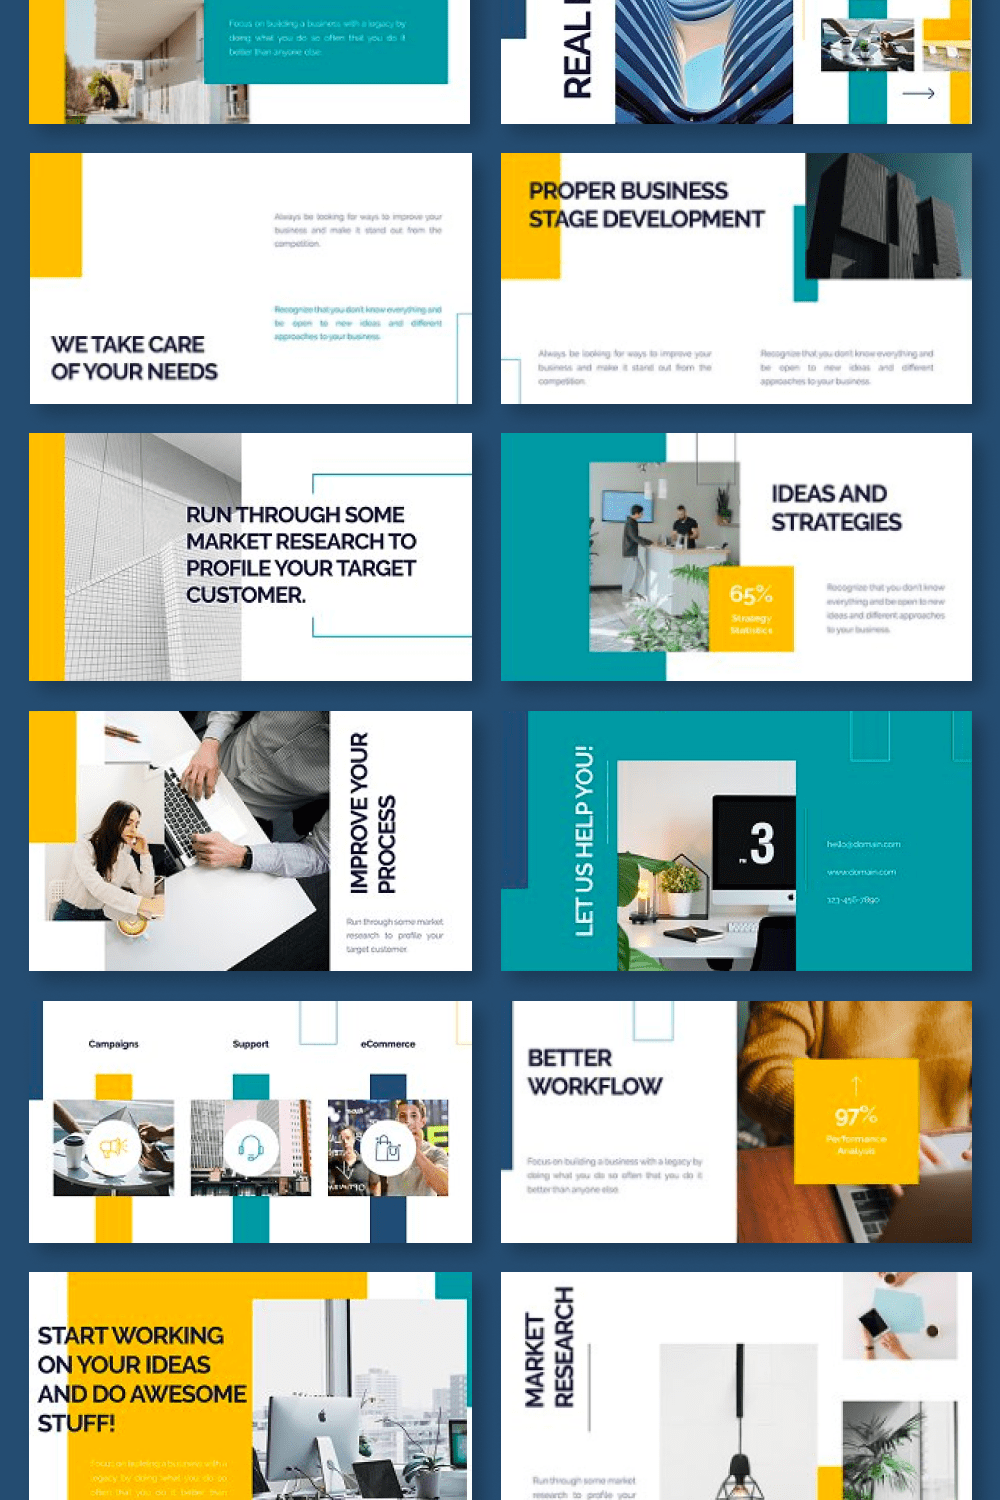 Everything is beautiful in this template - color, visual combination and infographics.